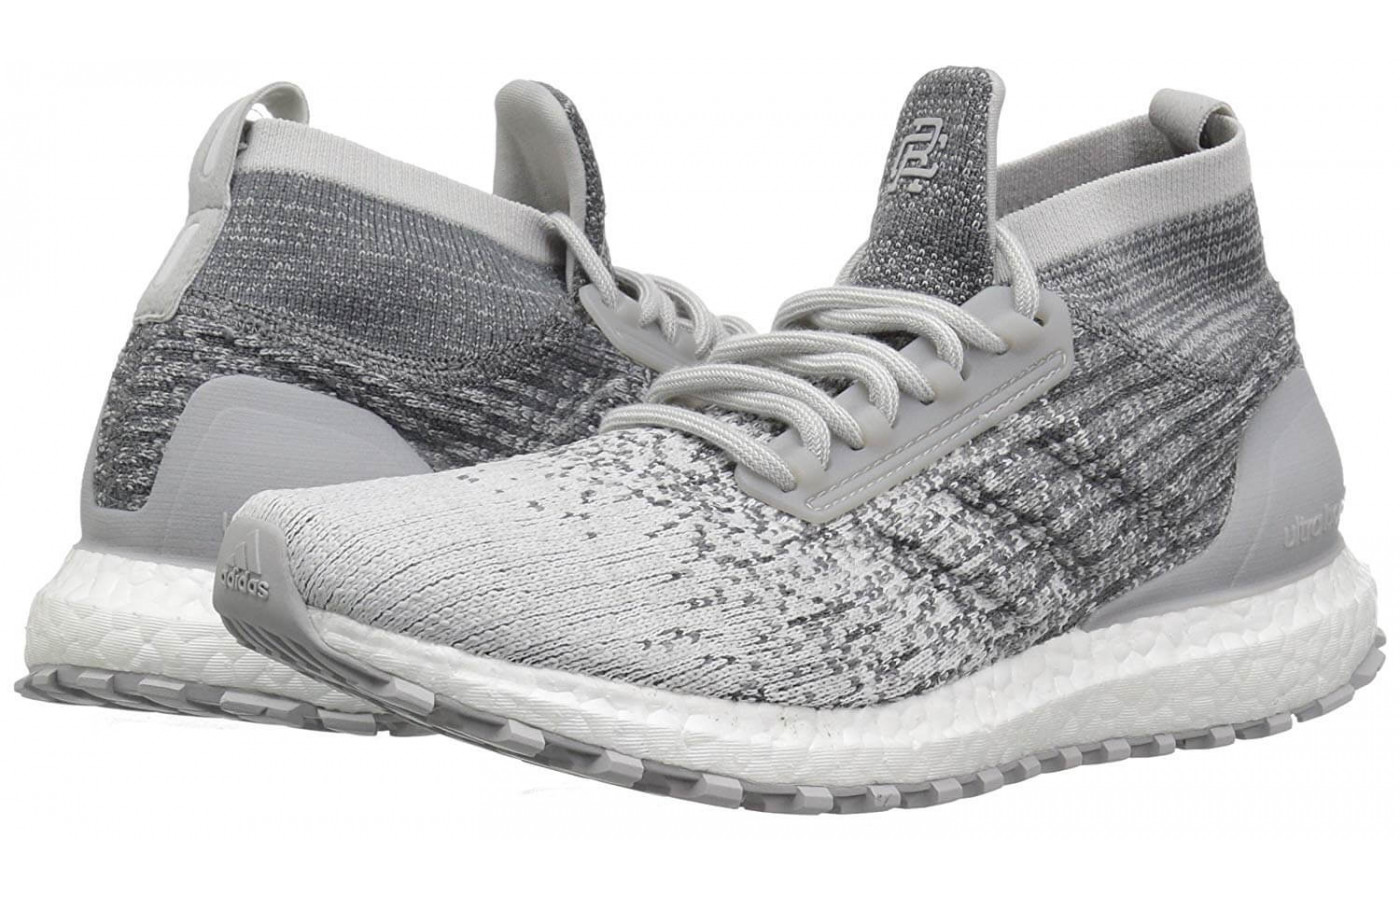 The Adidas X Reigning Champ Ultraboost are fashionable